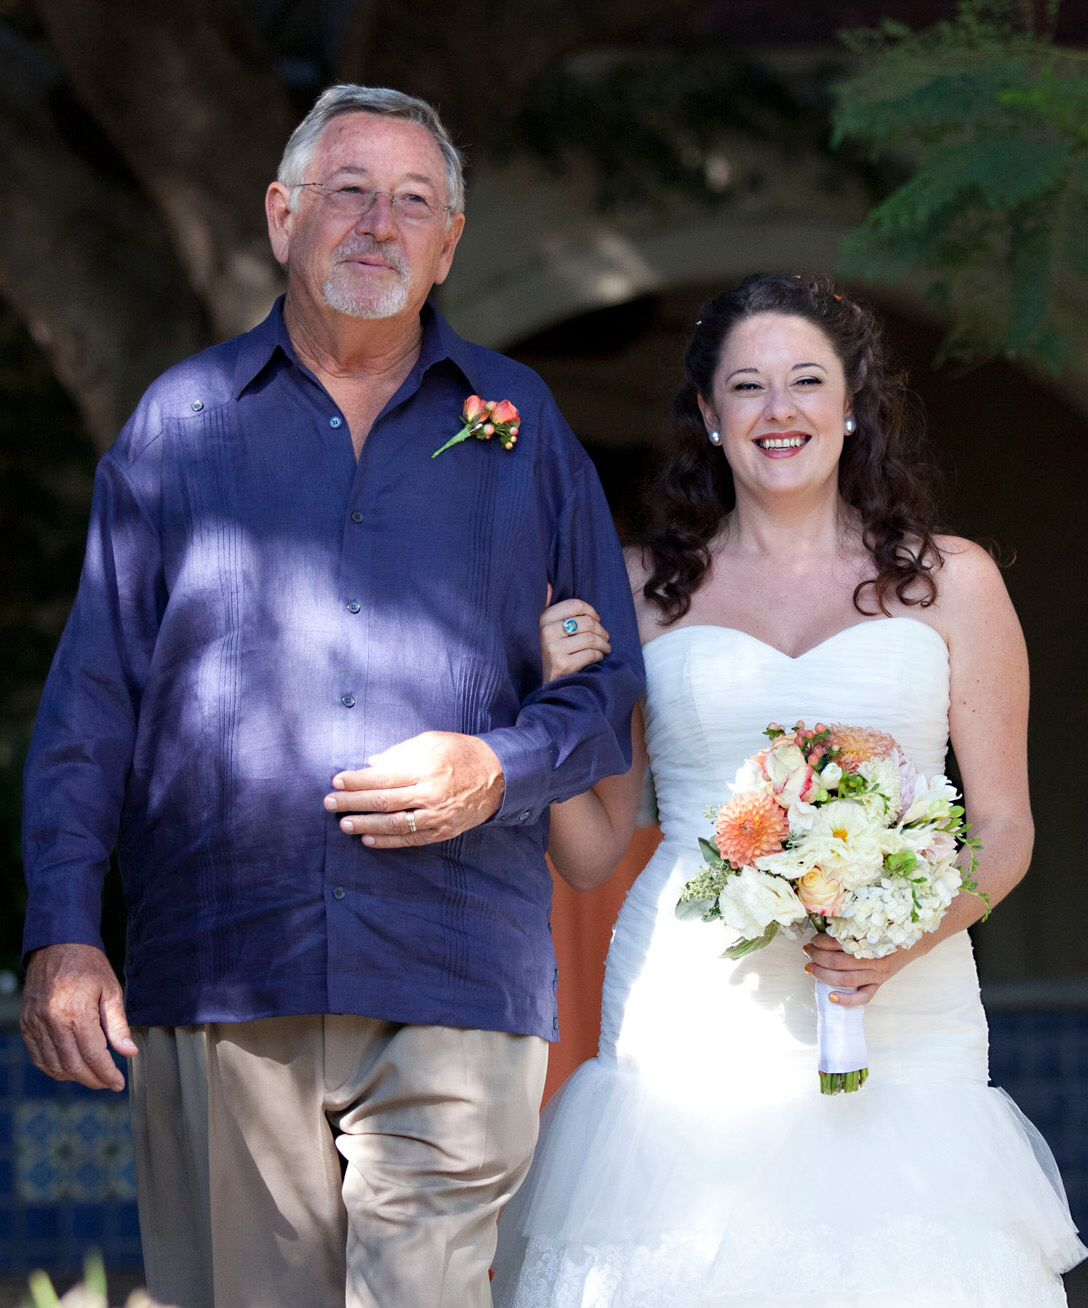 Casual Wedding Attire For Father Of The Bride Diffe Color Shirt And Pants But A Great Look